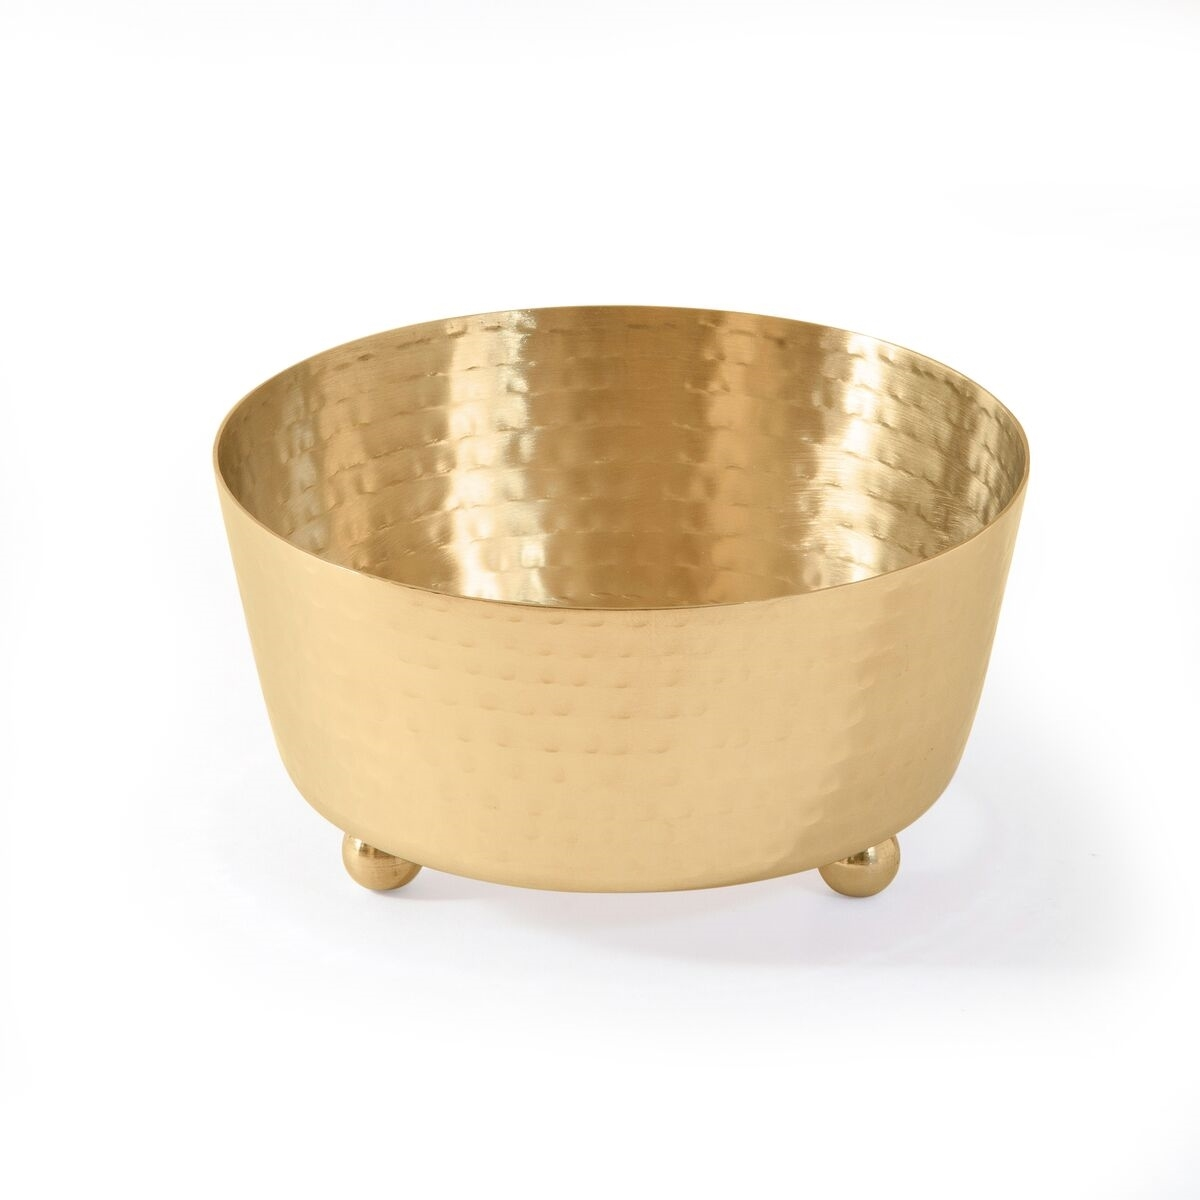 Hammered Design Dip Container Holder - Gold/Silver